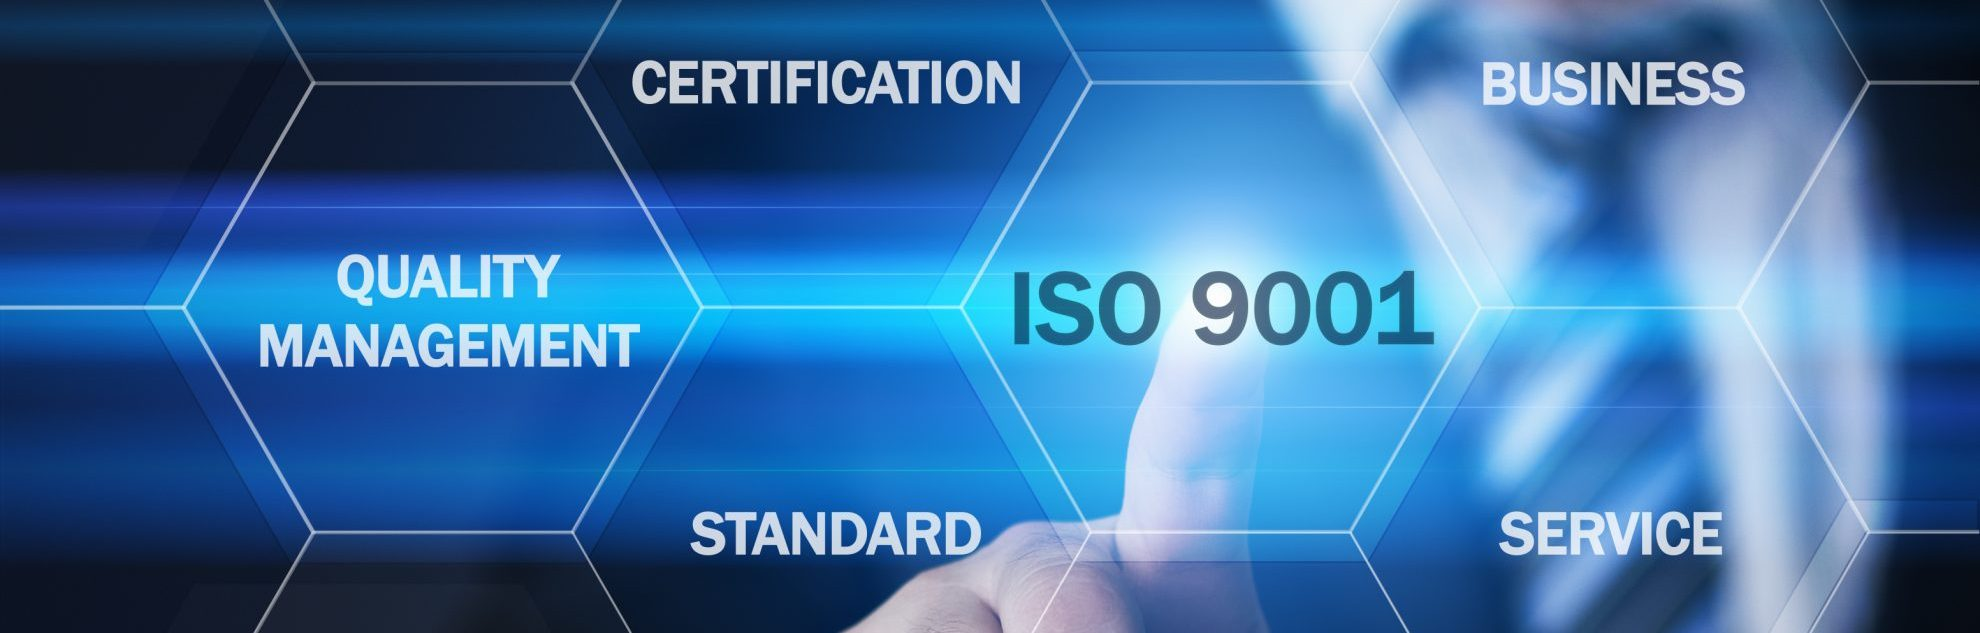 9001 iso certification